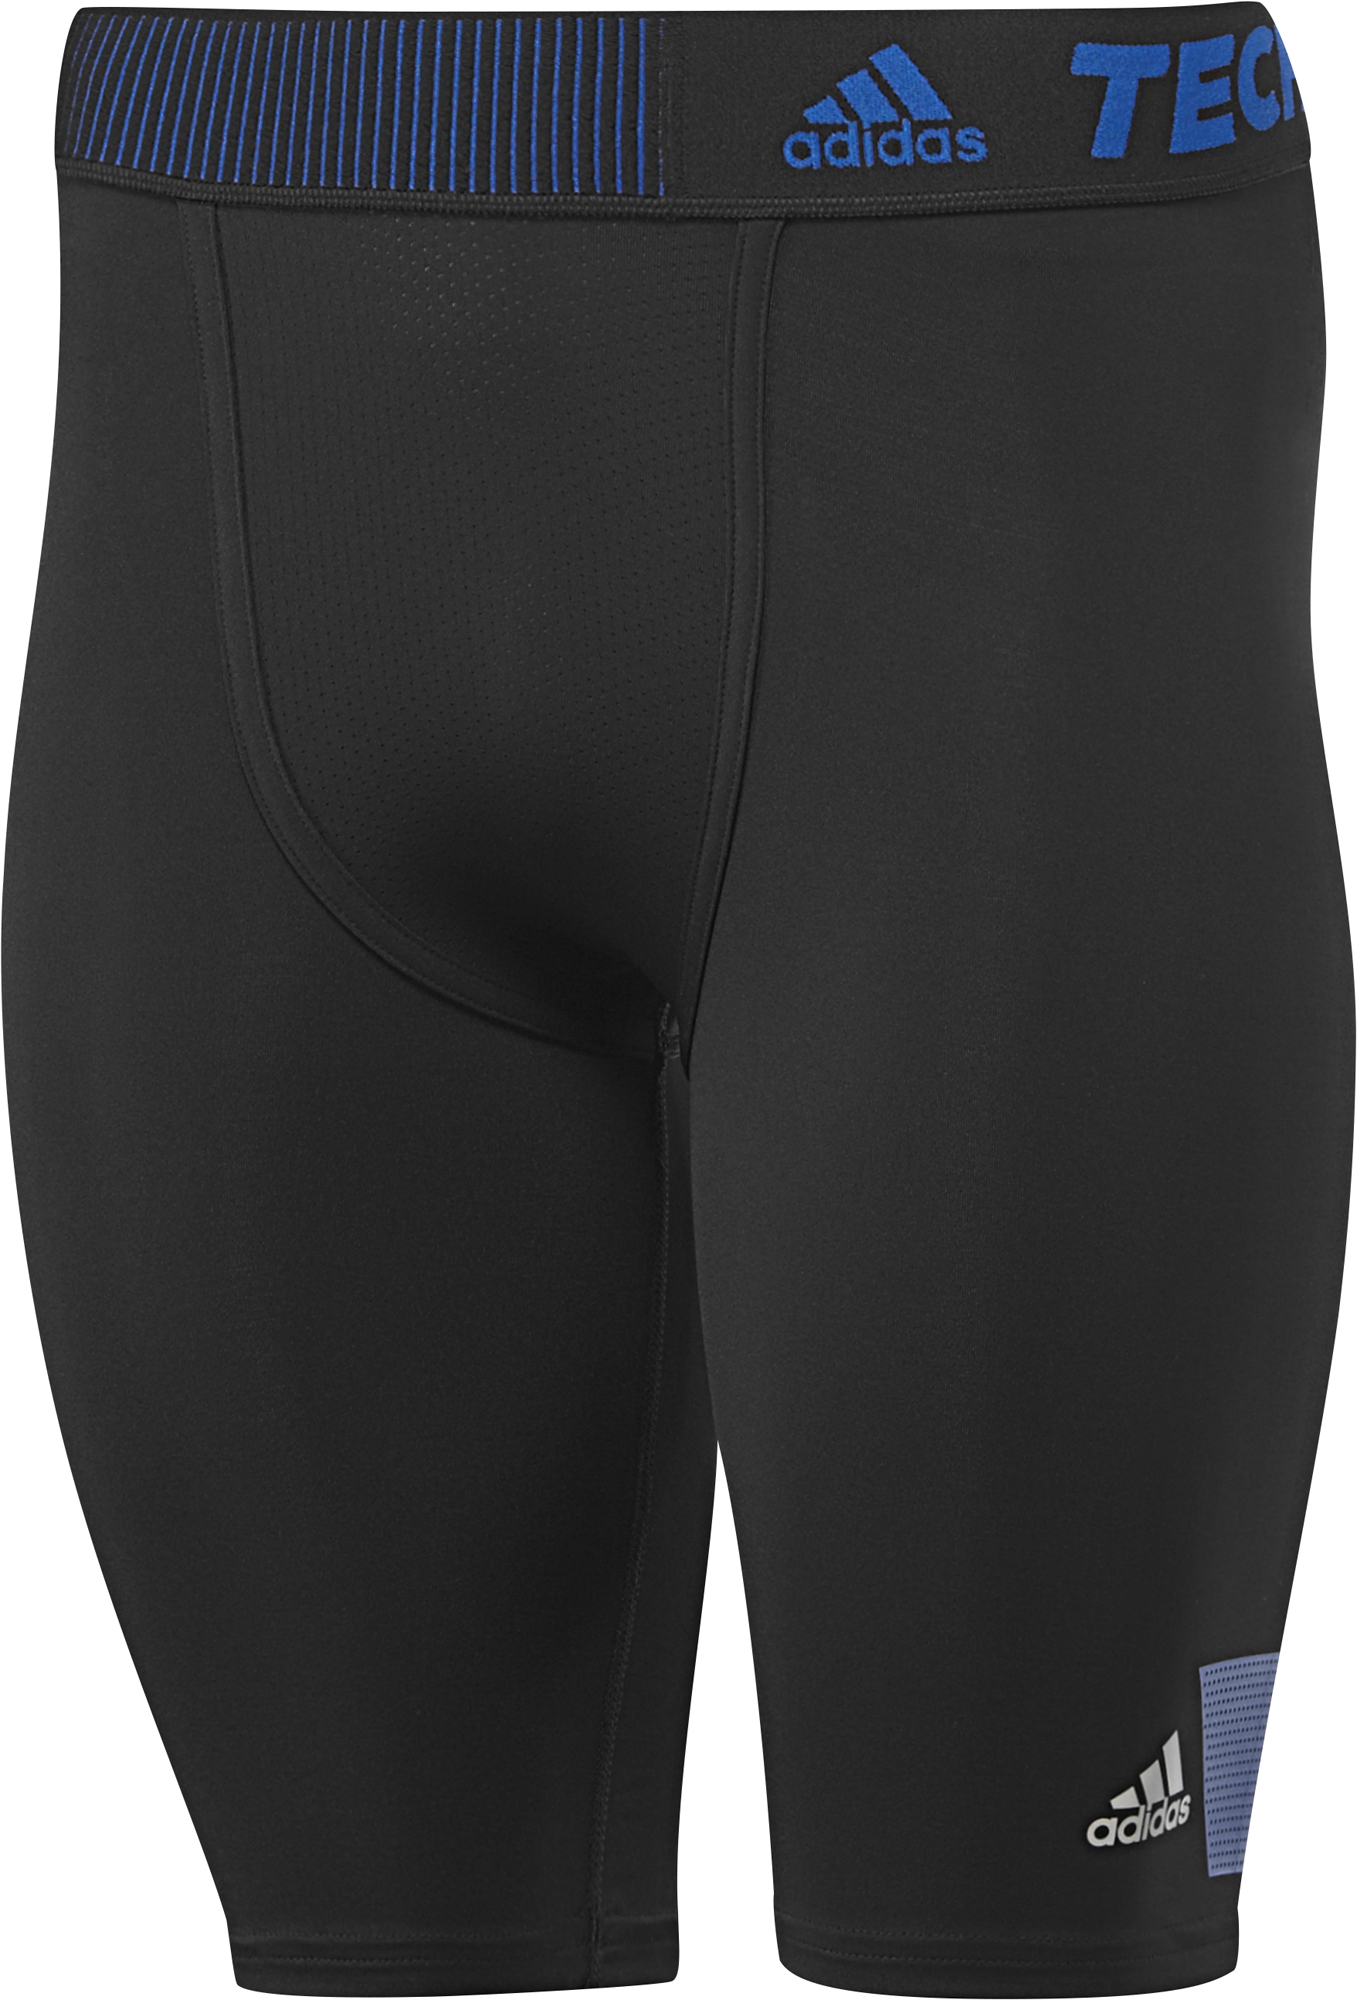 Wiggle | Adidas Techfit Cool Short Tights - AW14 | Running Shorts